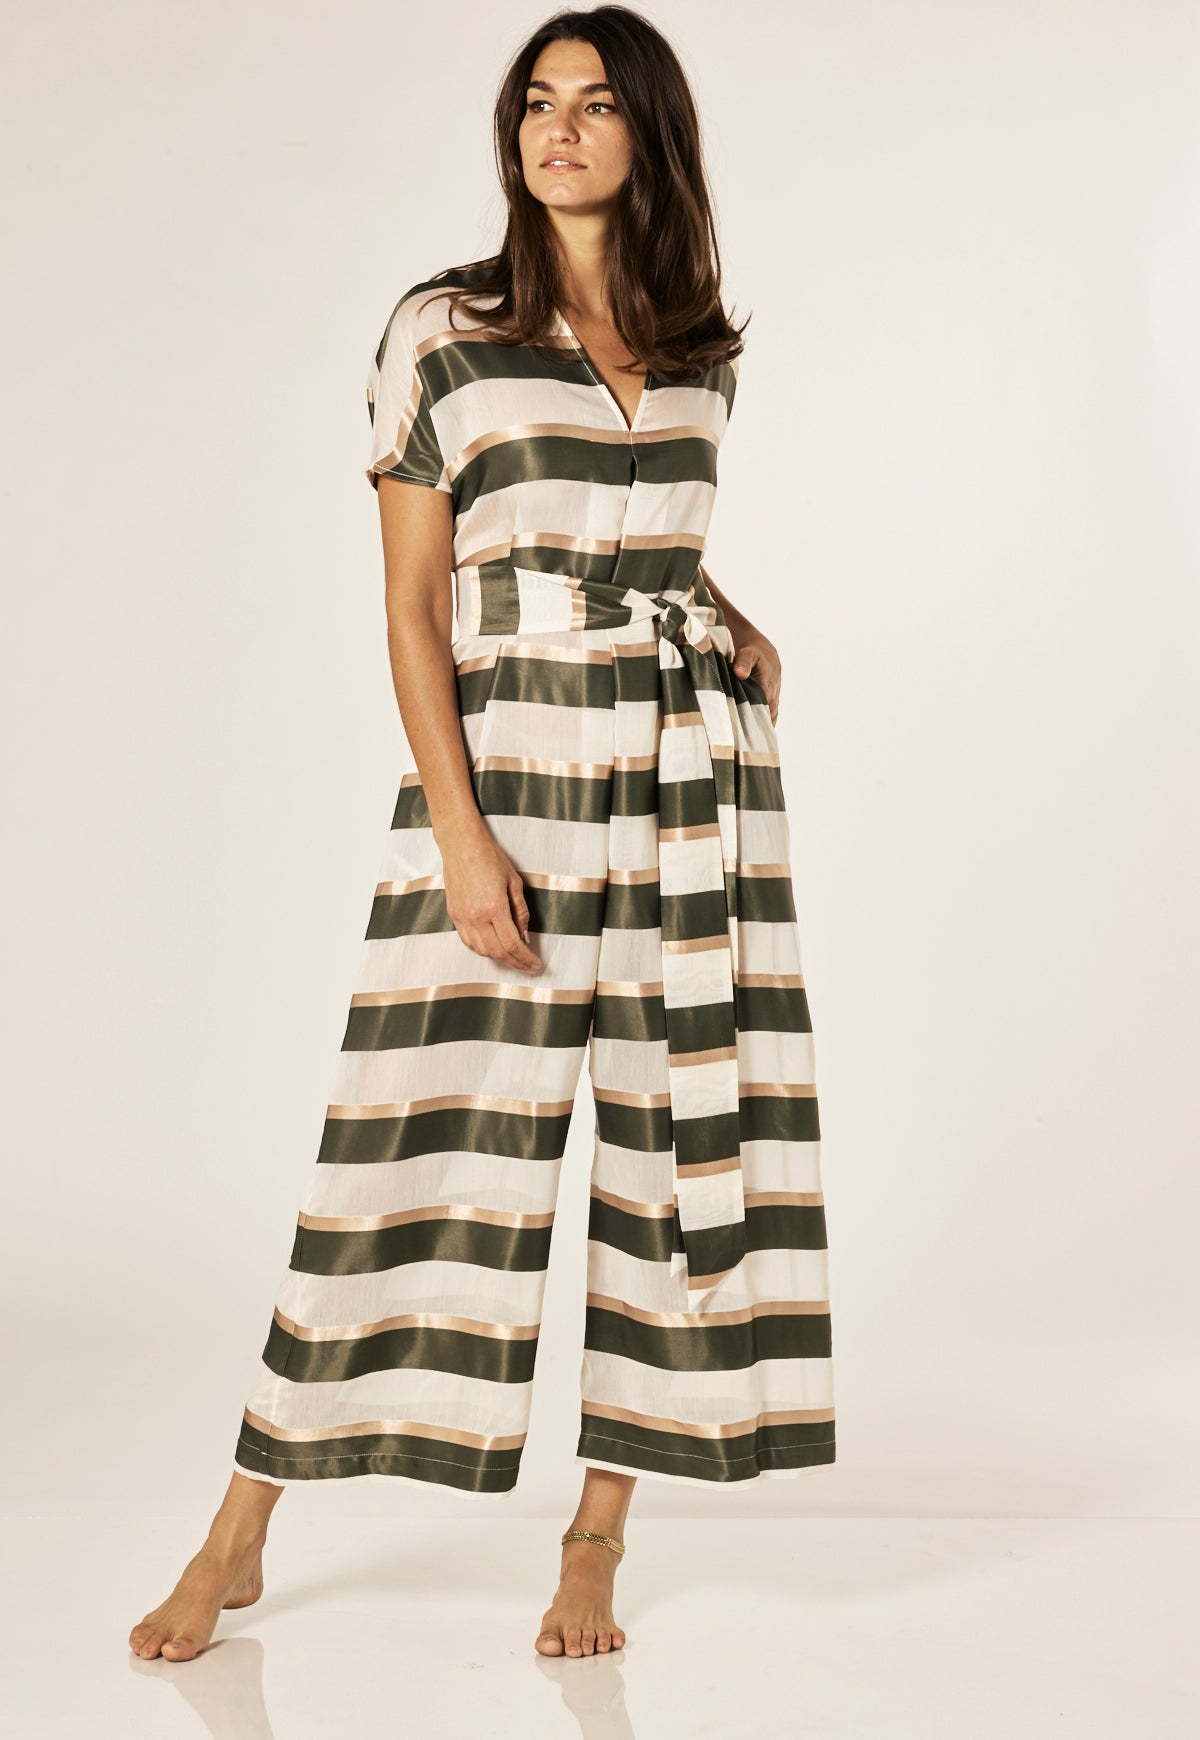 ROSETTA OLIVE/GOLD STRIPED JUMPSUIT